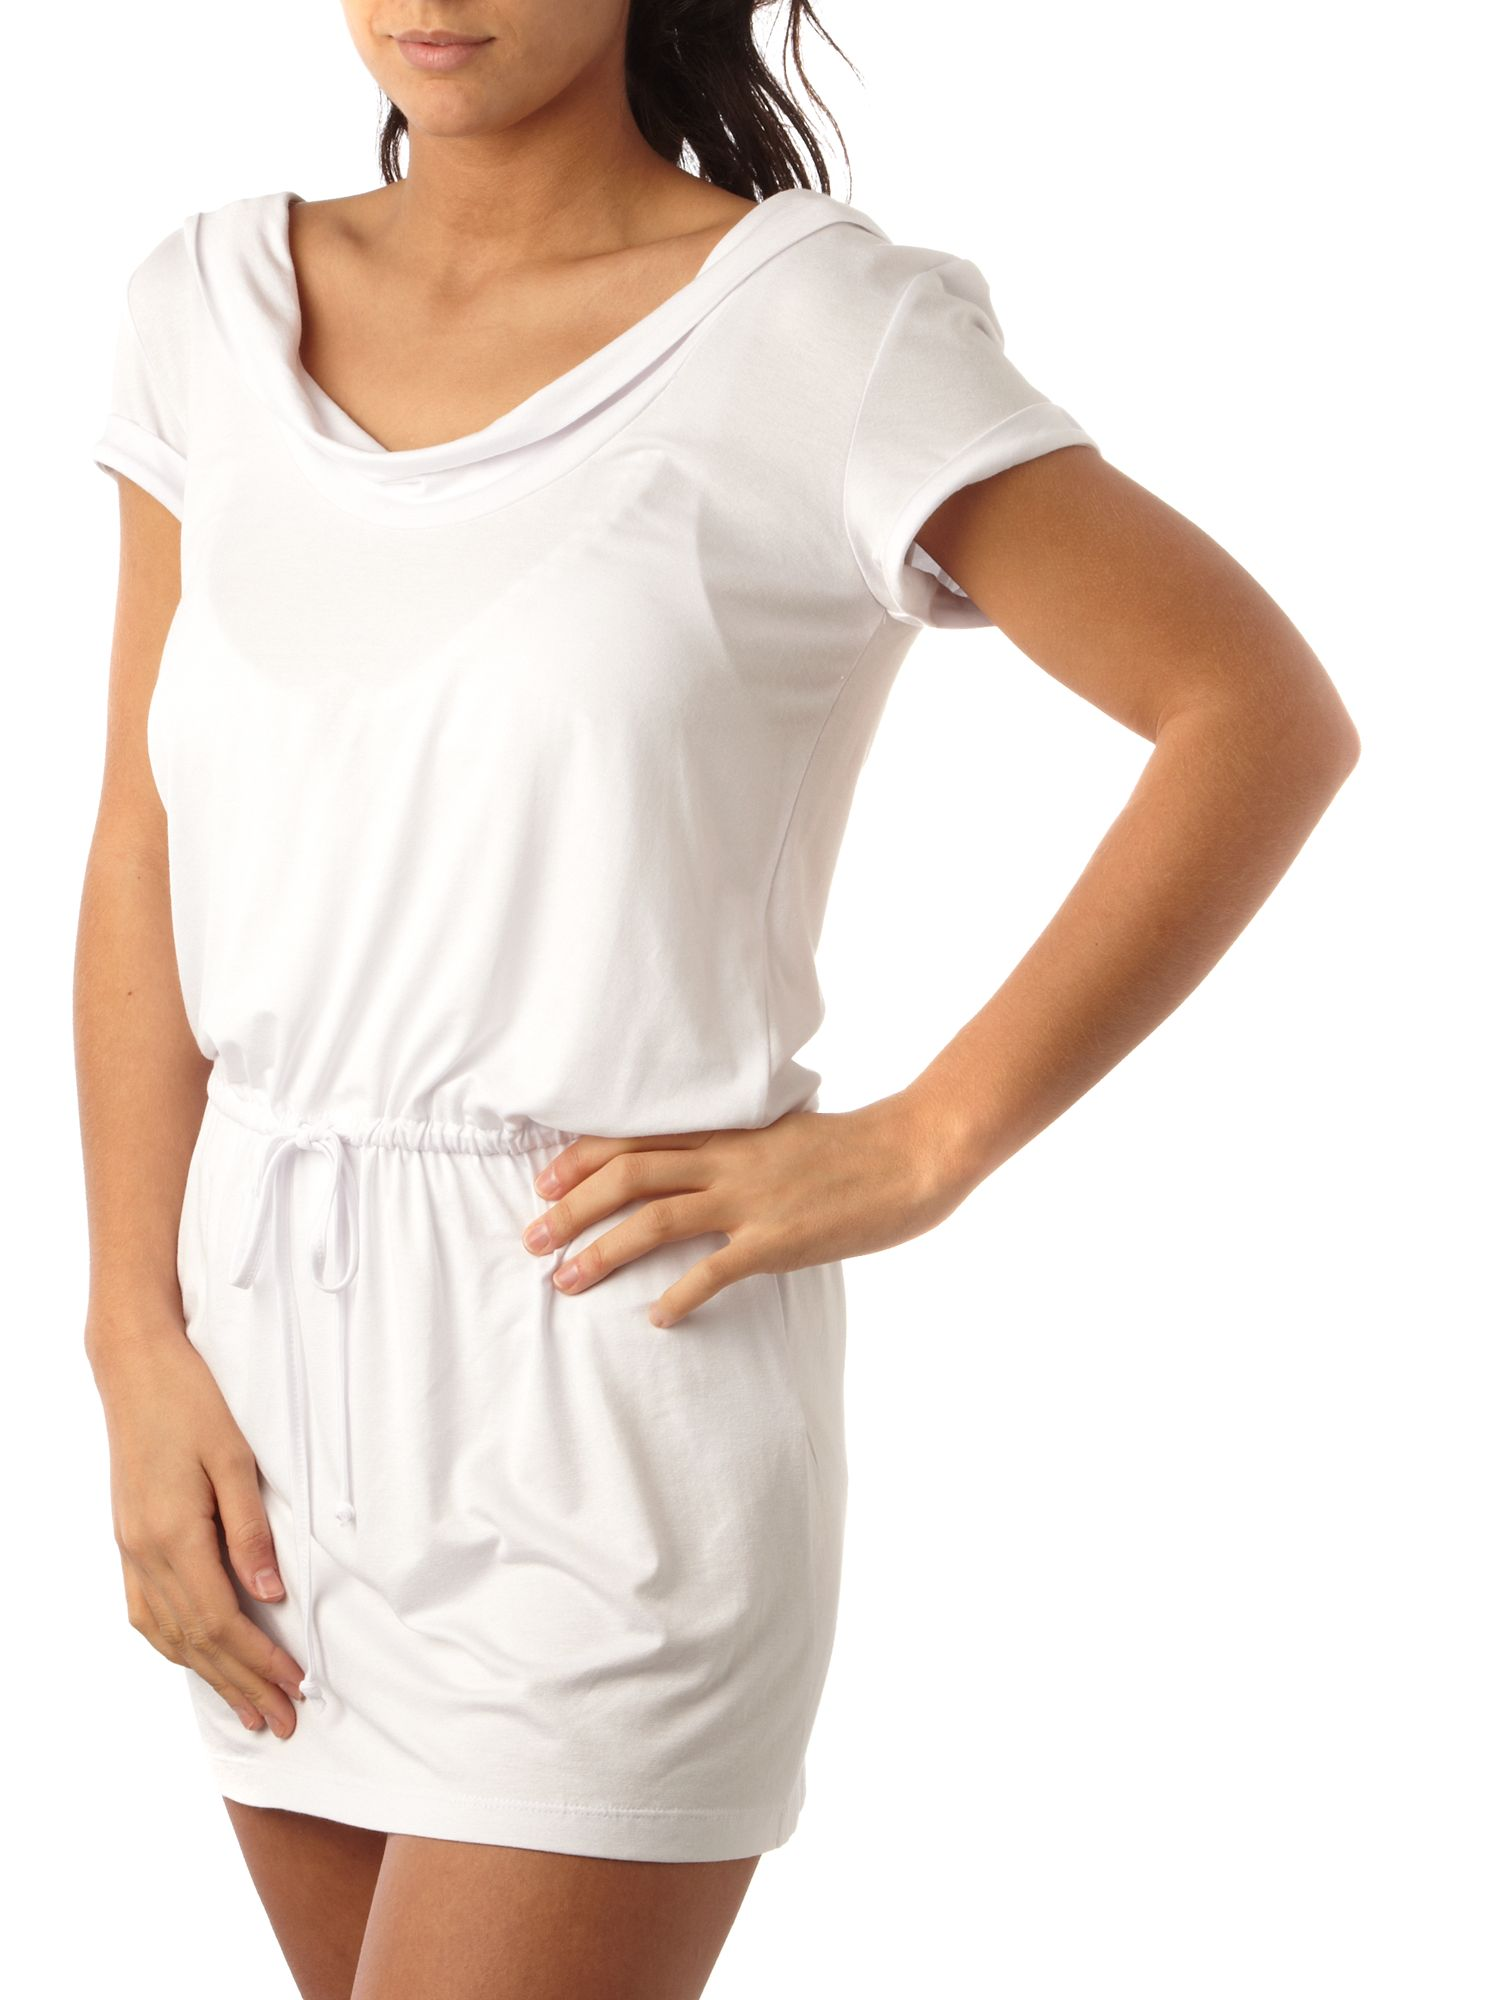 Therapy Hooded t-shirt dress product image